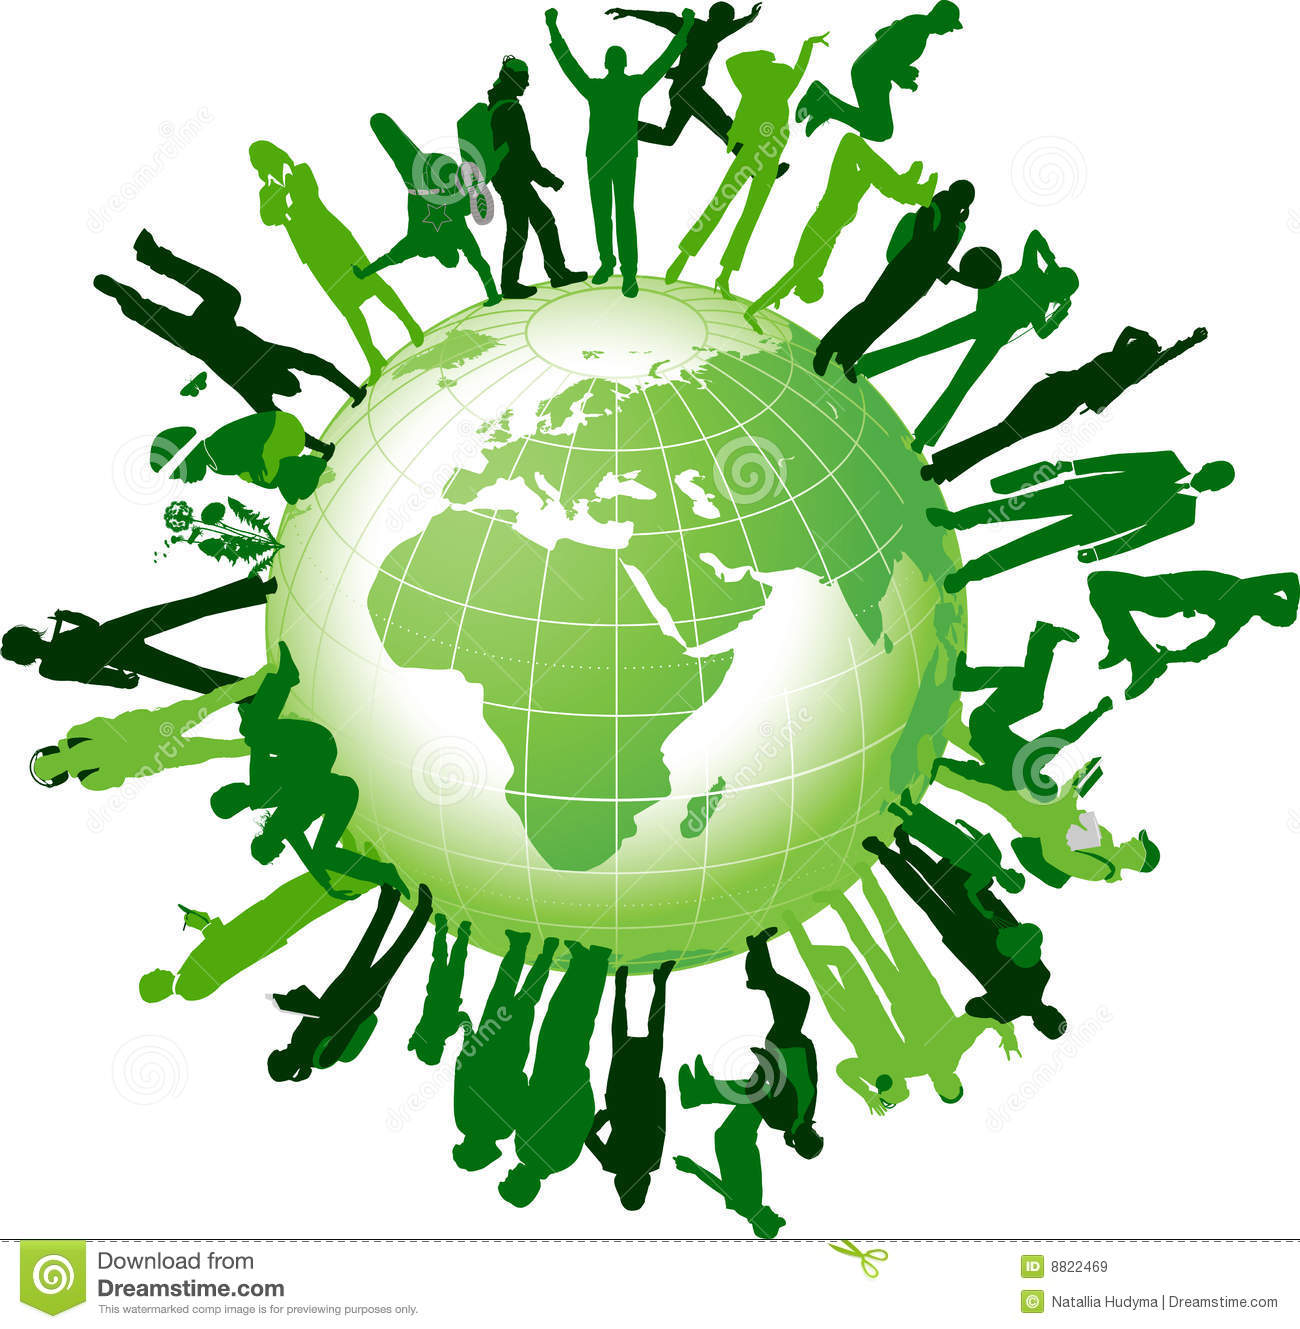 Global community. All elements and textures are individual objects ...